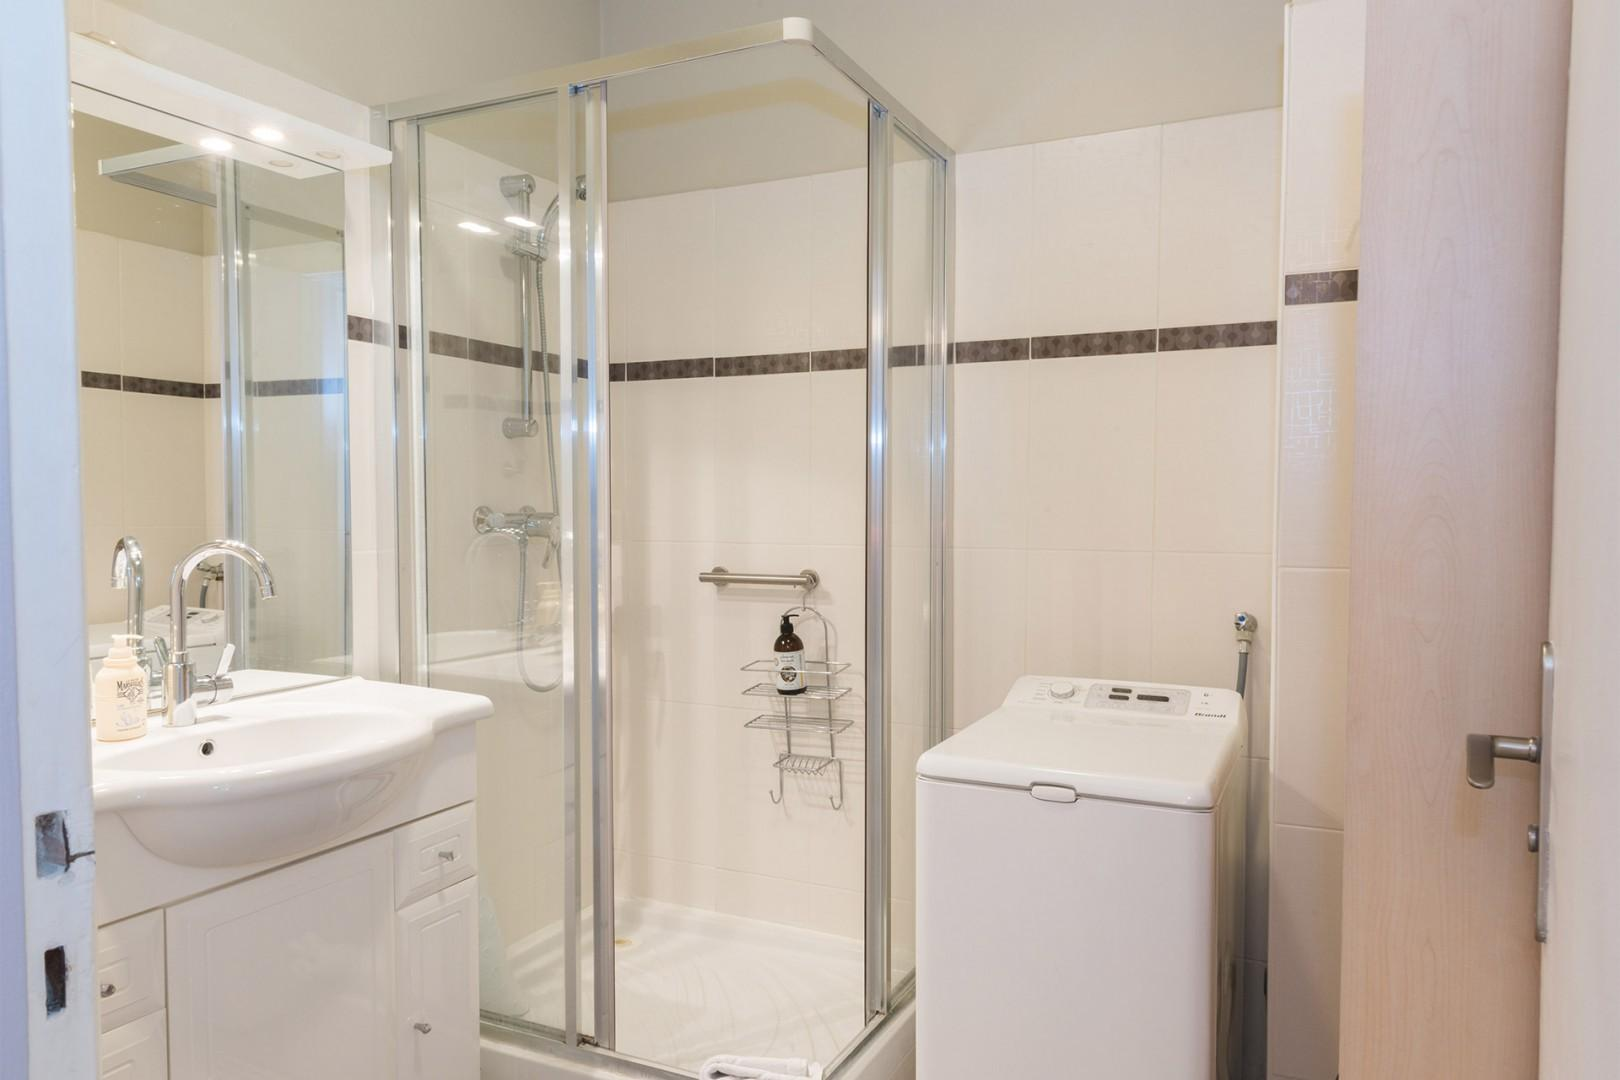 For your convenience, the bathroom features a washer-dryer combo.